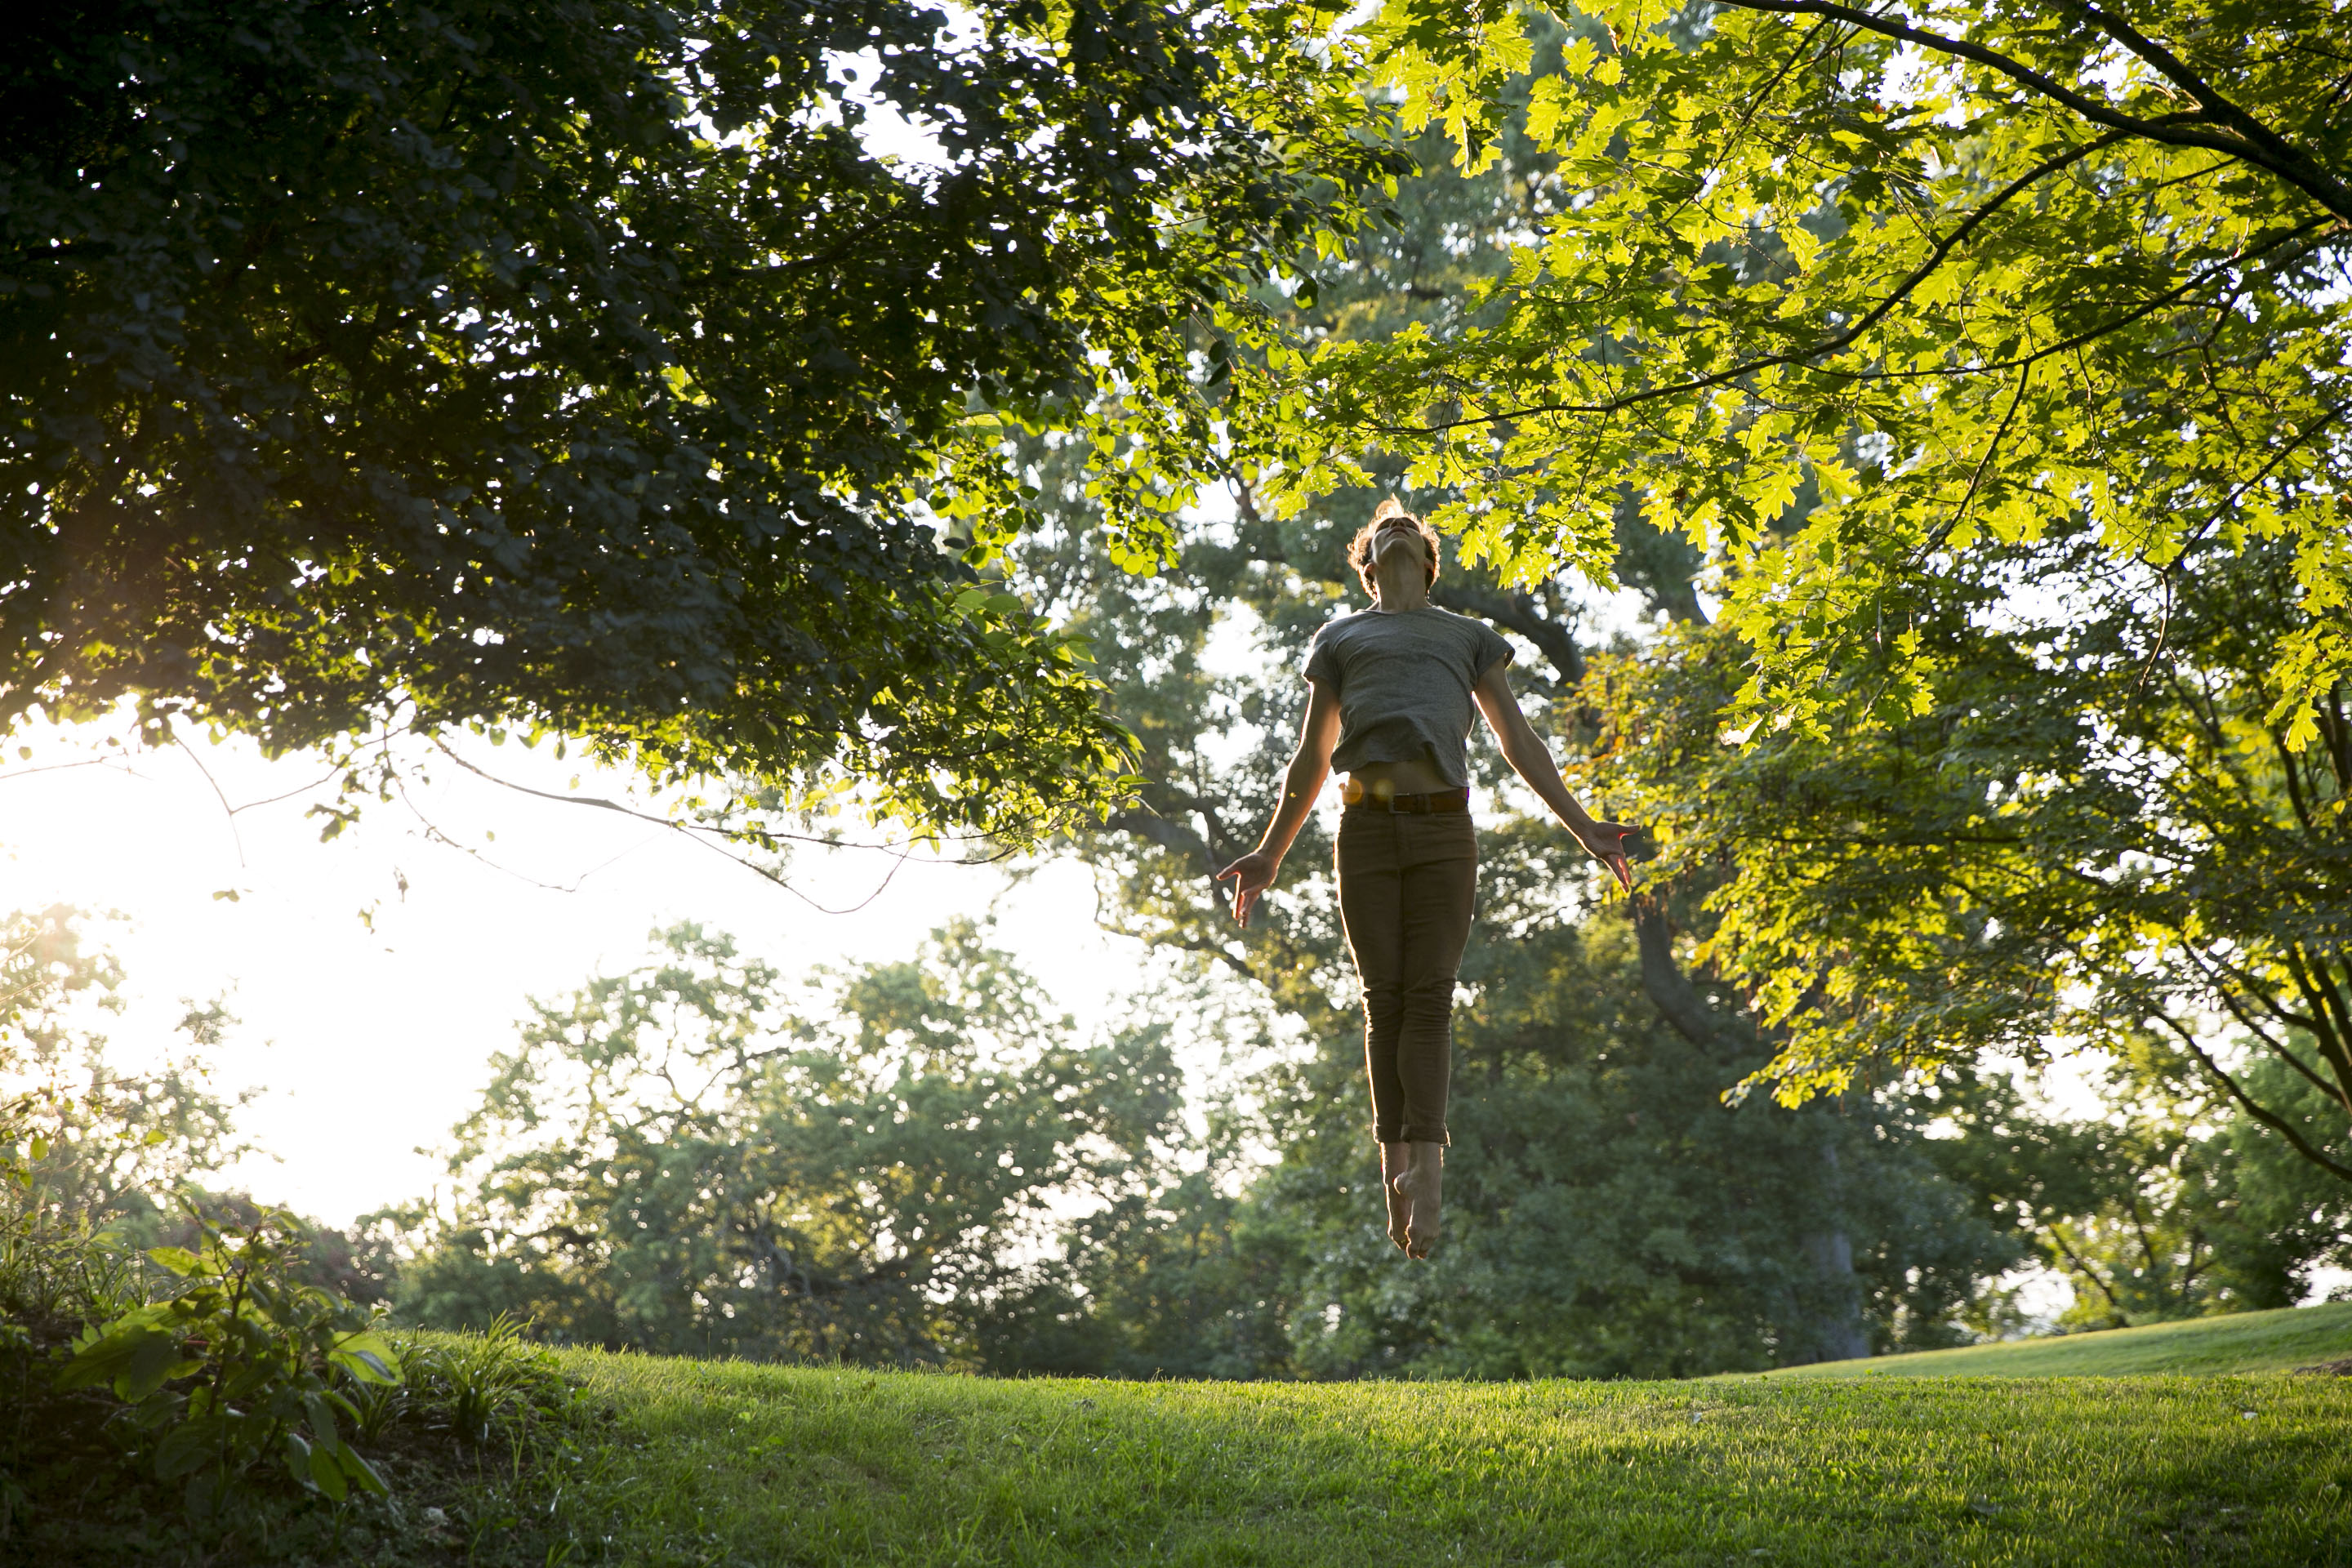 person jumping and dancing under trees